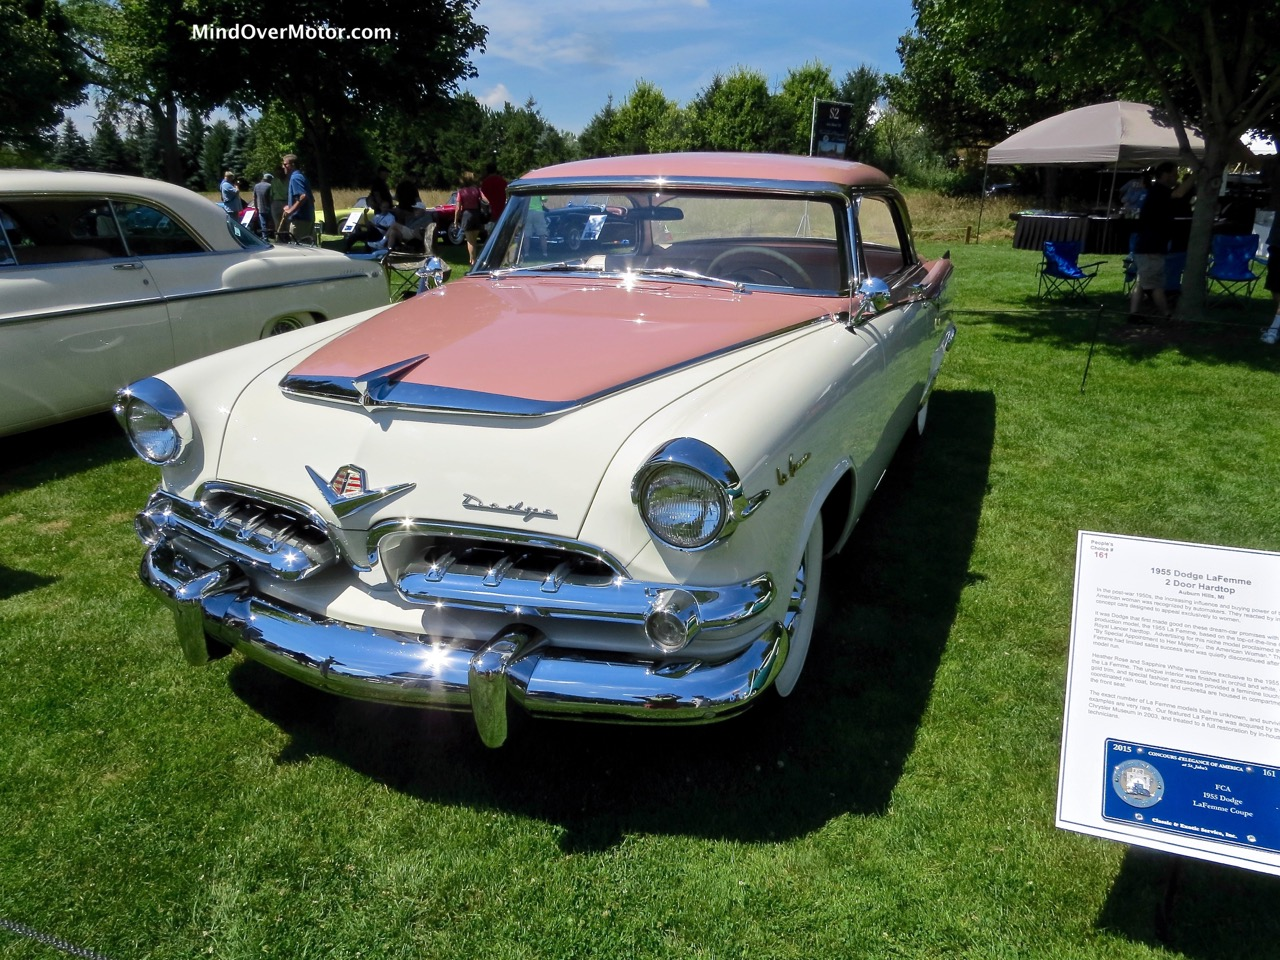 1955 Dodge Lafemme At The 2015 Concours Of America Mind Over Motor 1950s Cars La Femme Front